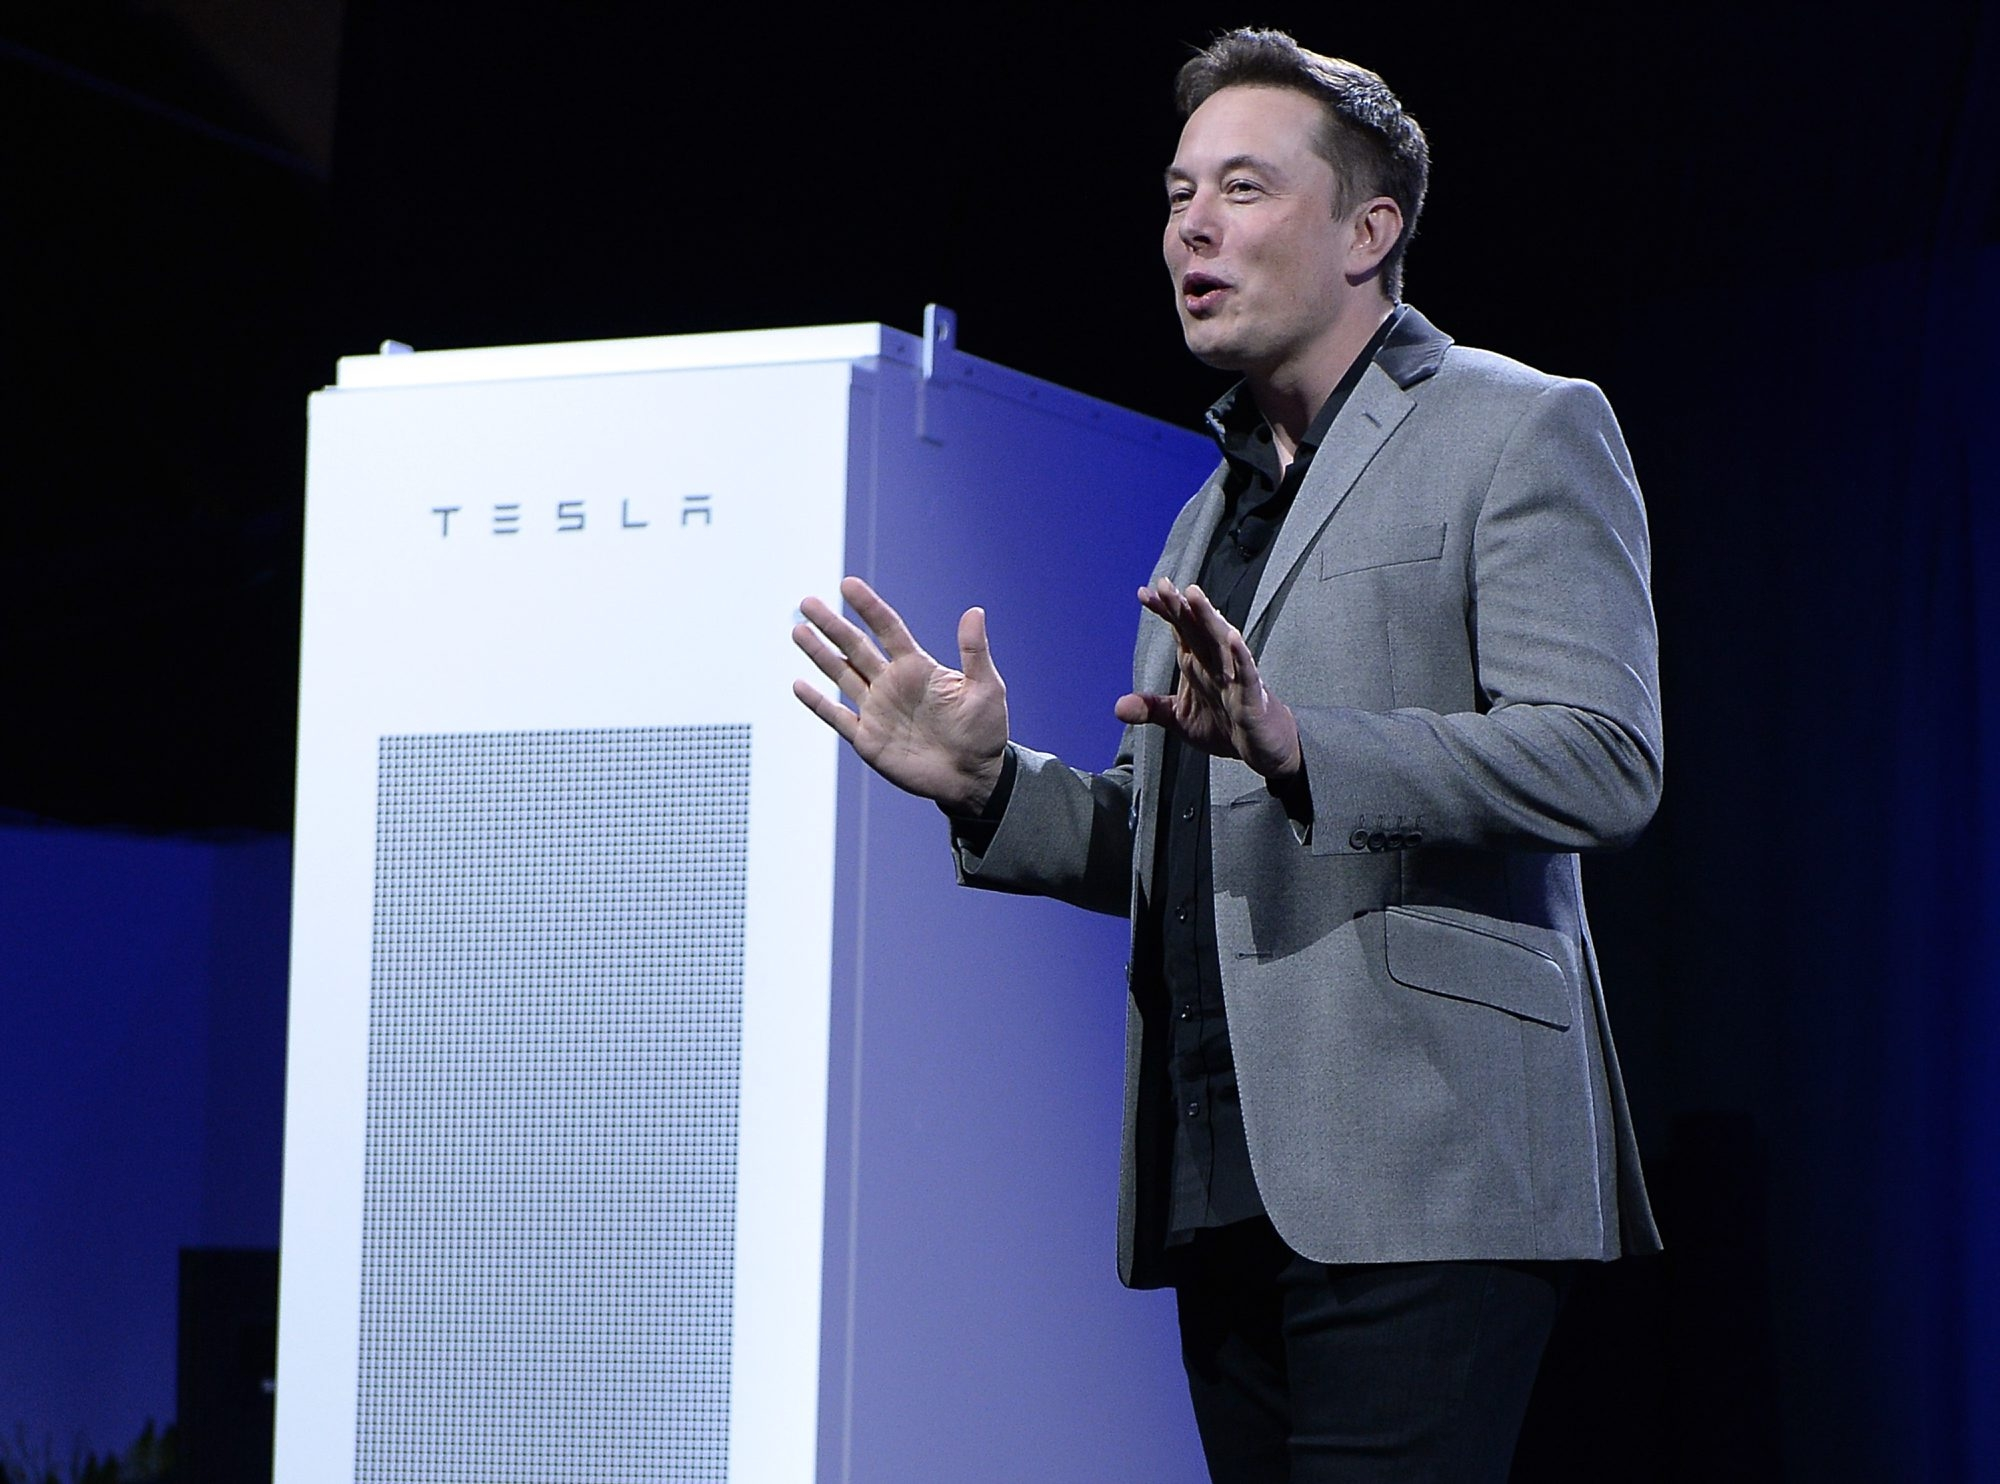 Elon Musk's role at Tesla could change if investor group is heeded.